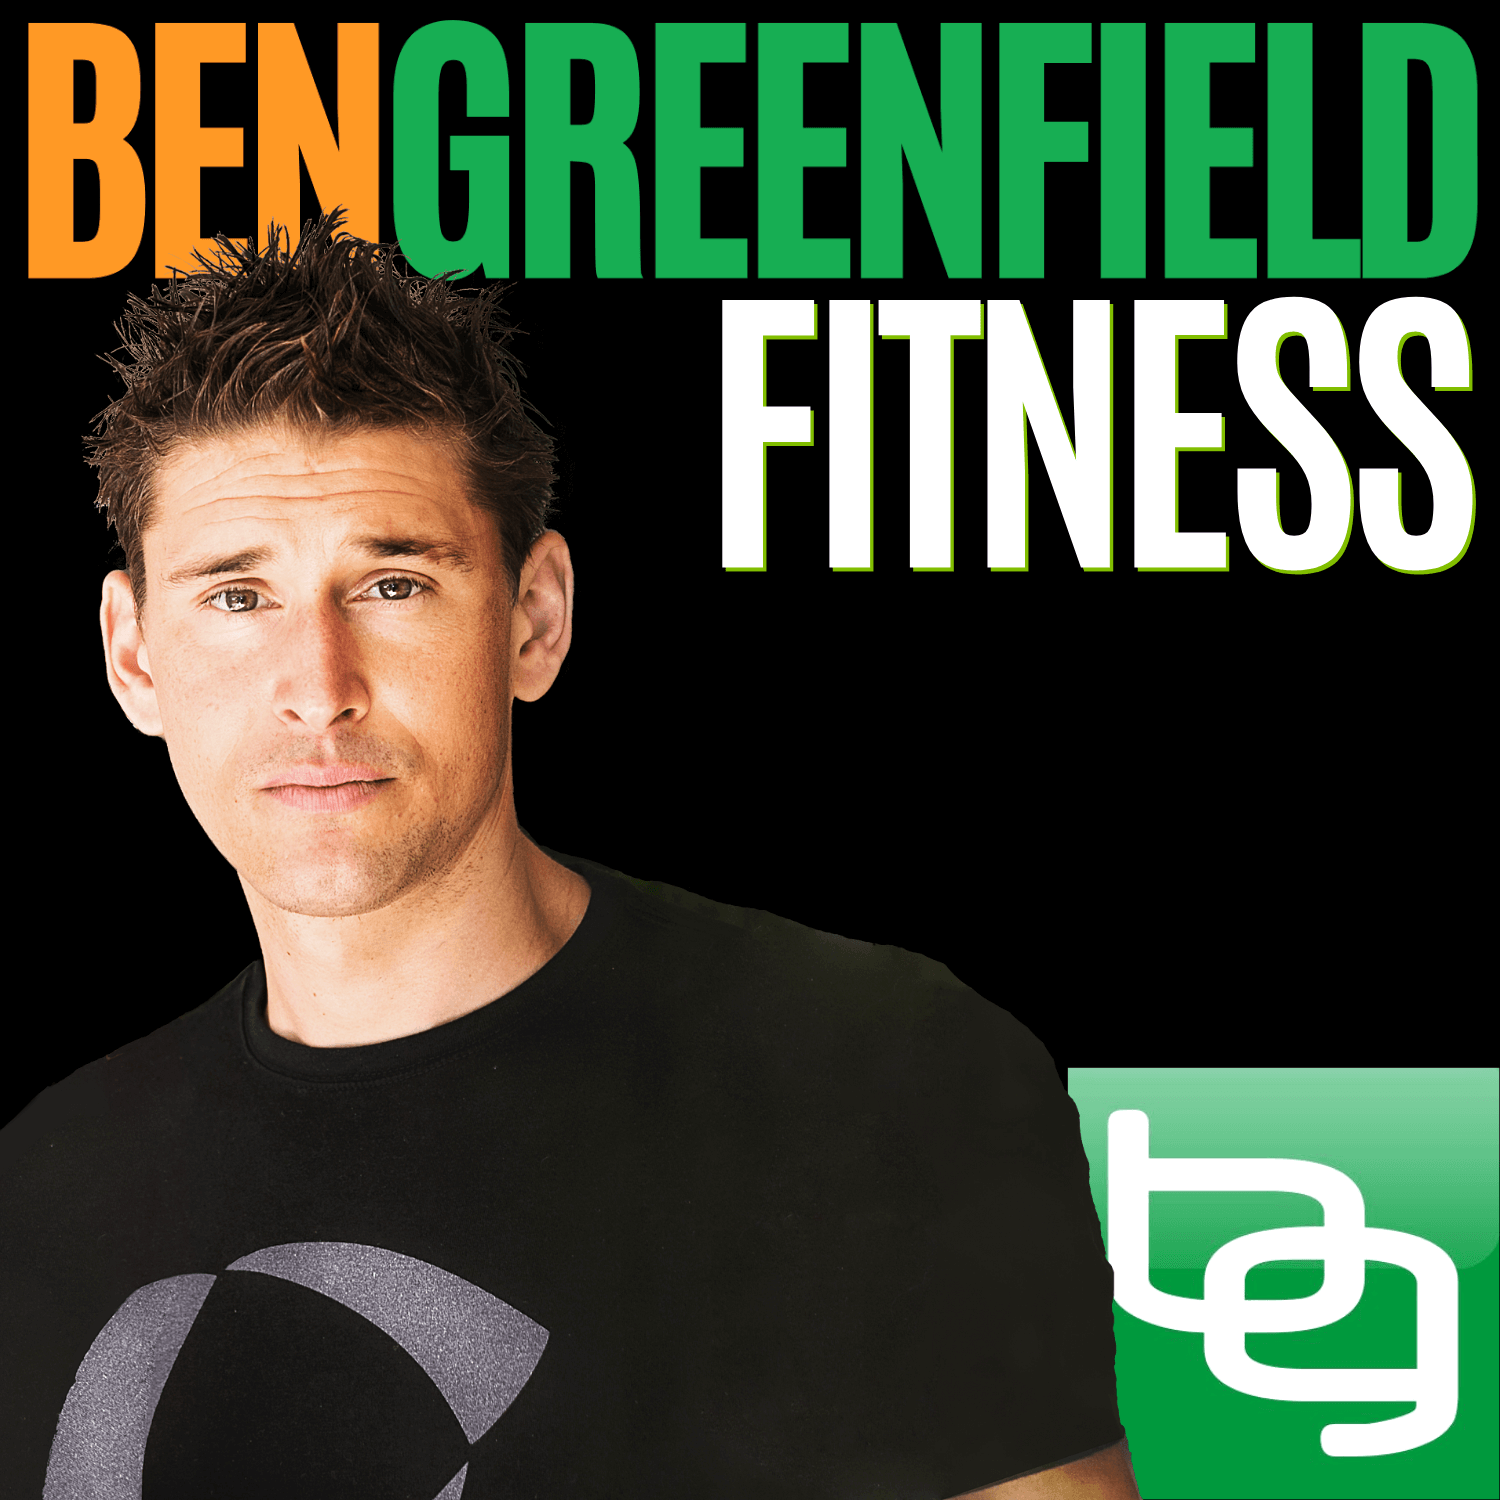 Beyond 23&Me: A Deep Dive Into Ben Greenfield's Personal DNA Results